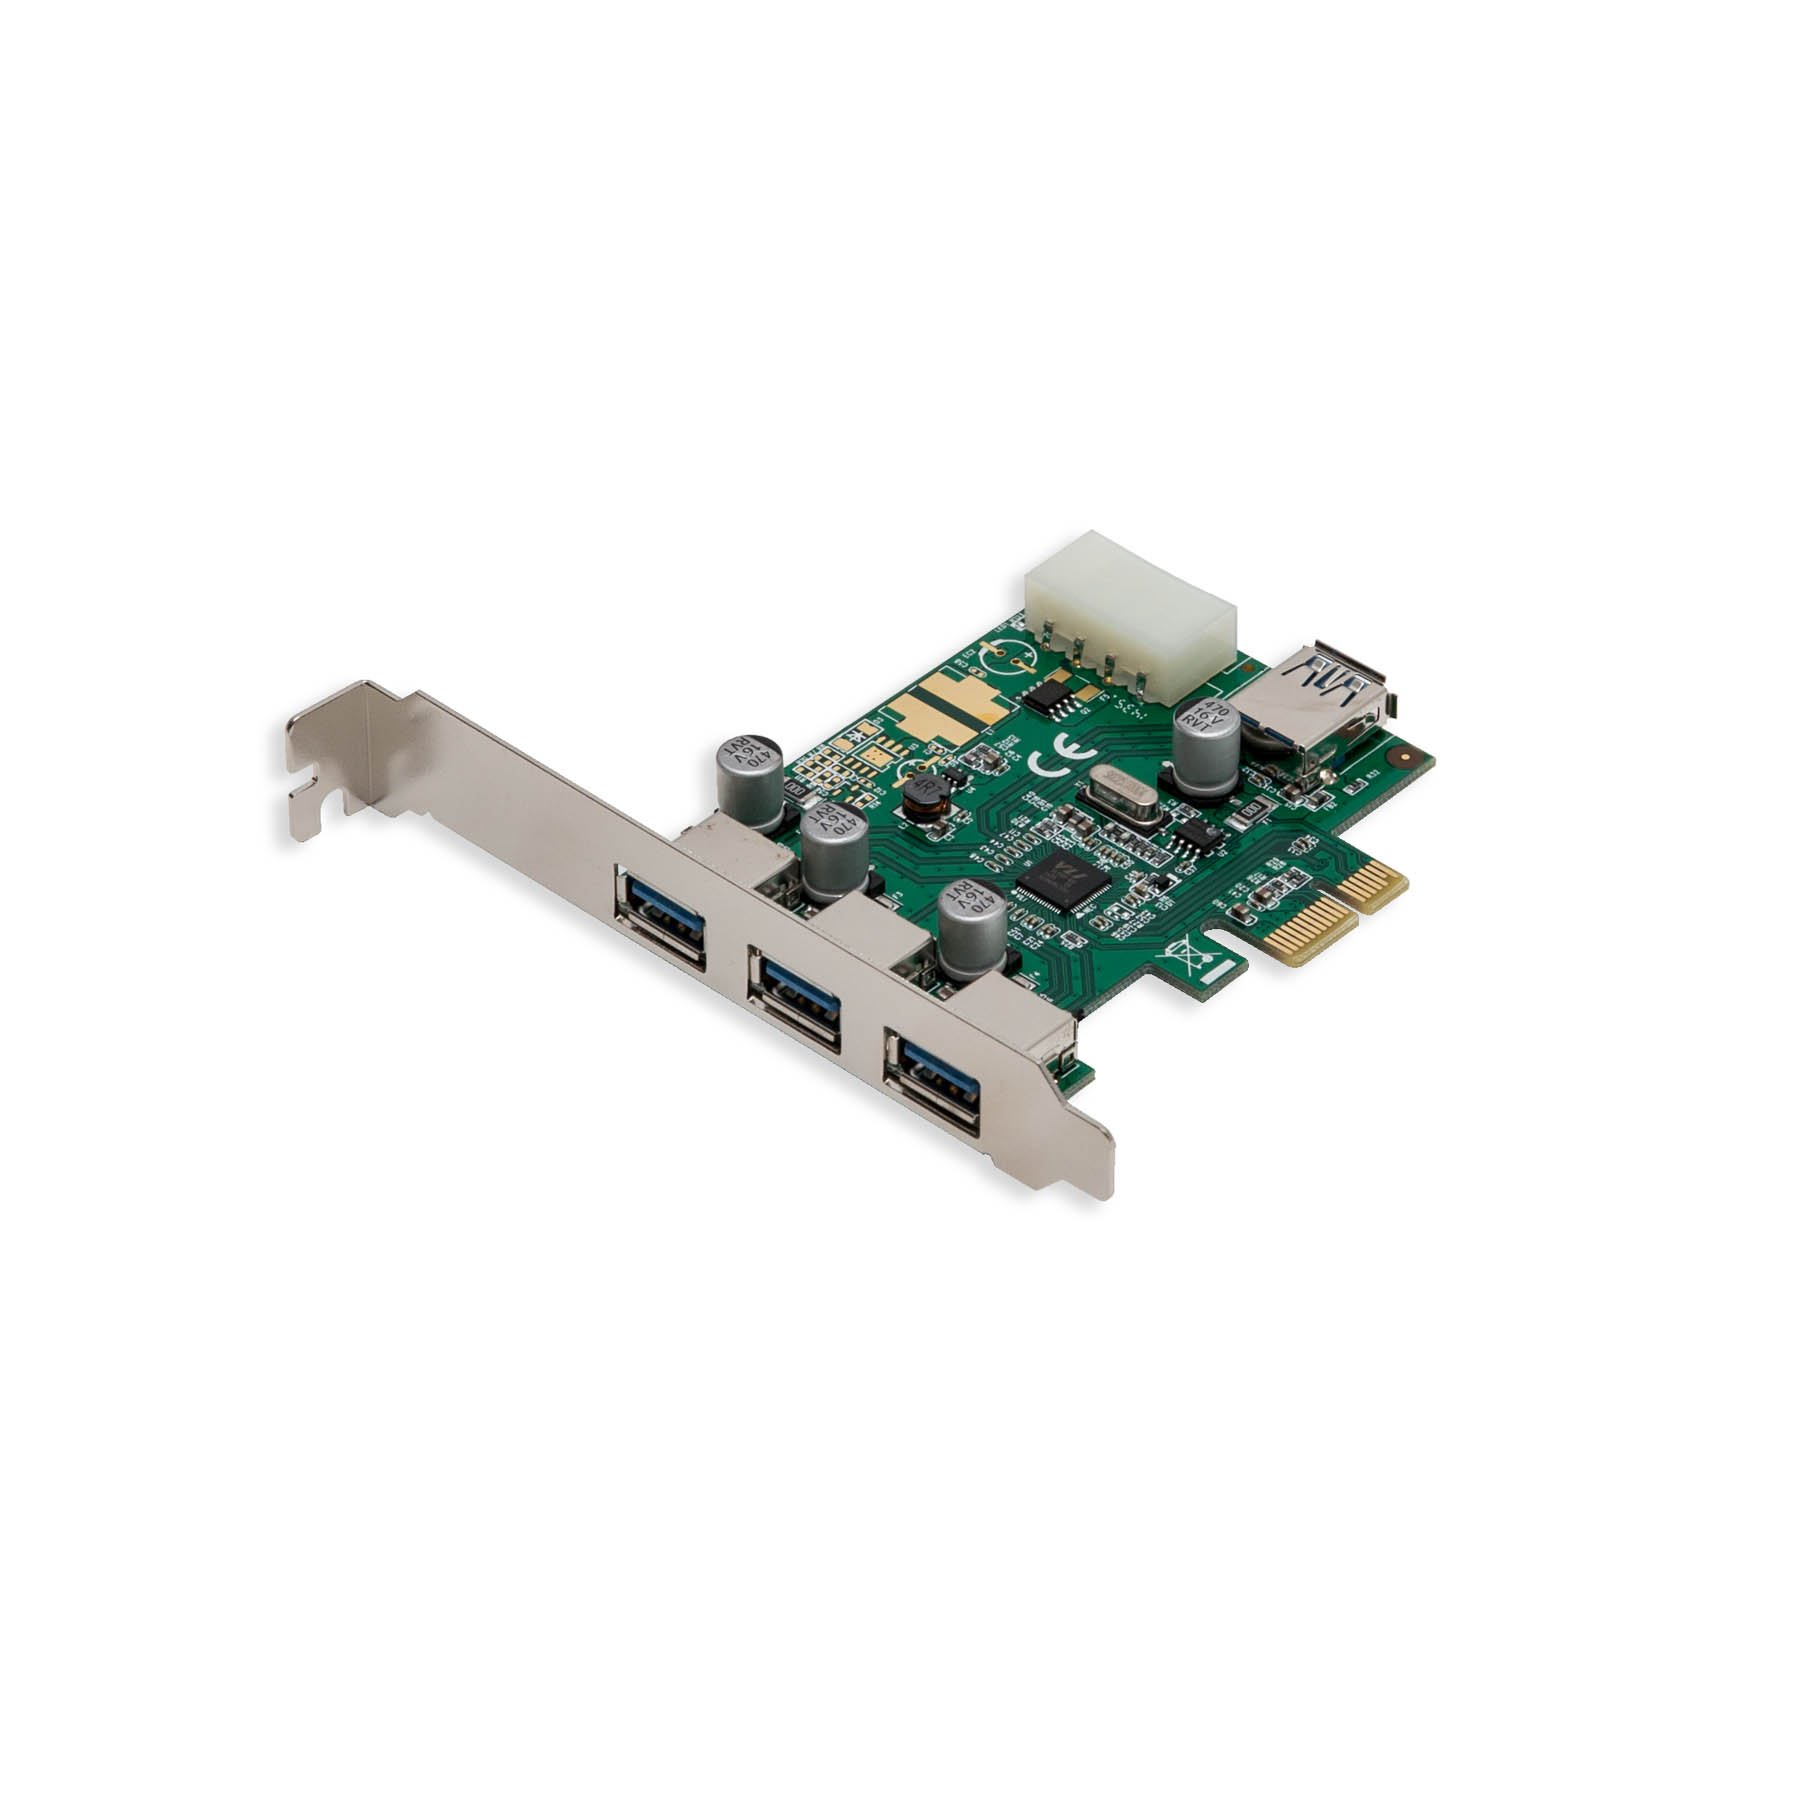 Syba 3 Port USB 3.0 PCI-e Card with 1 Internal USB 3.0 port